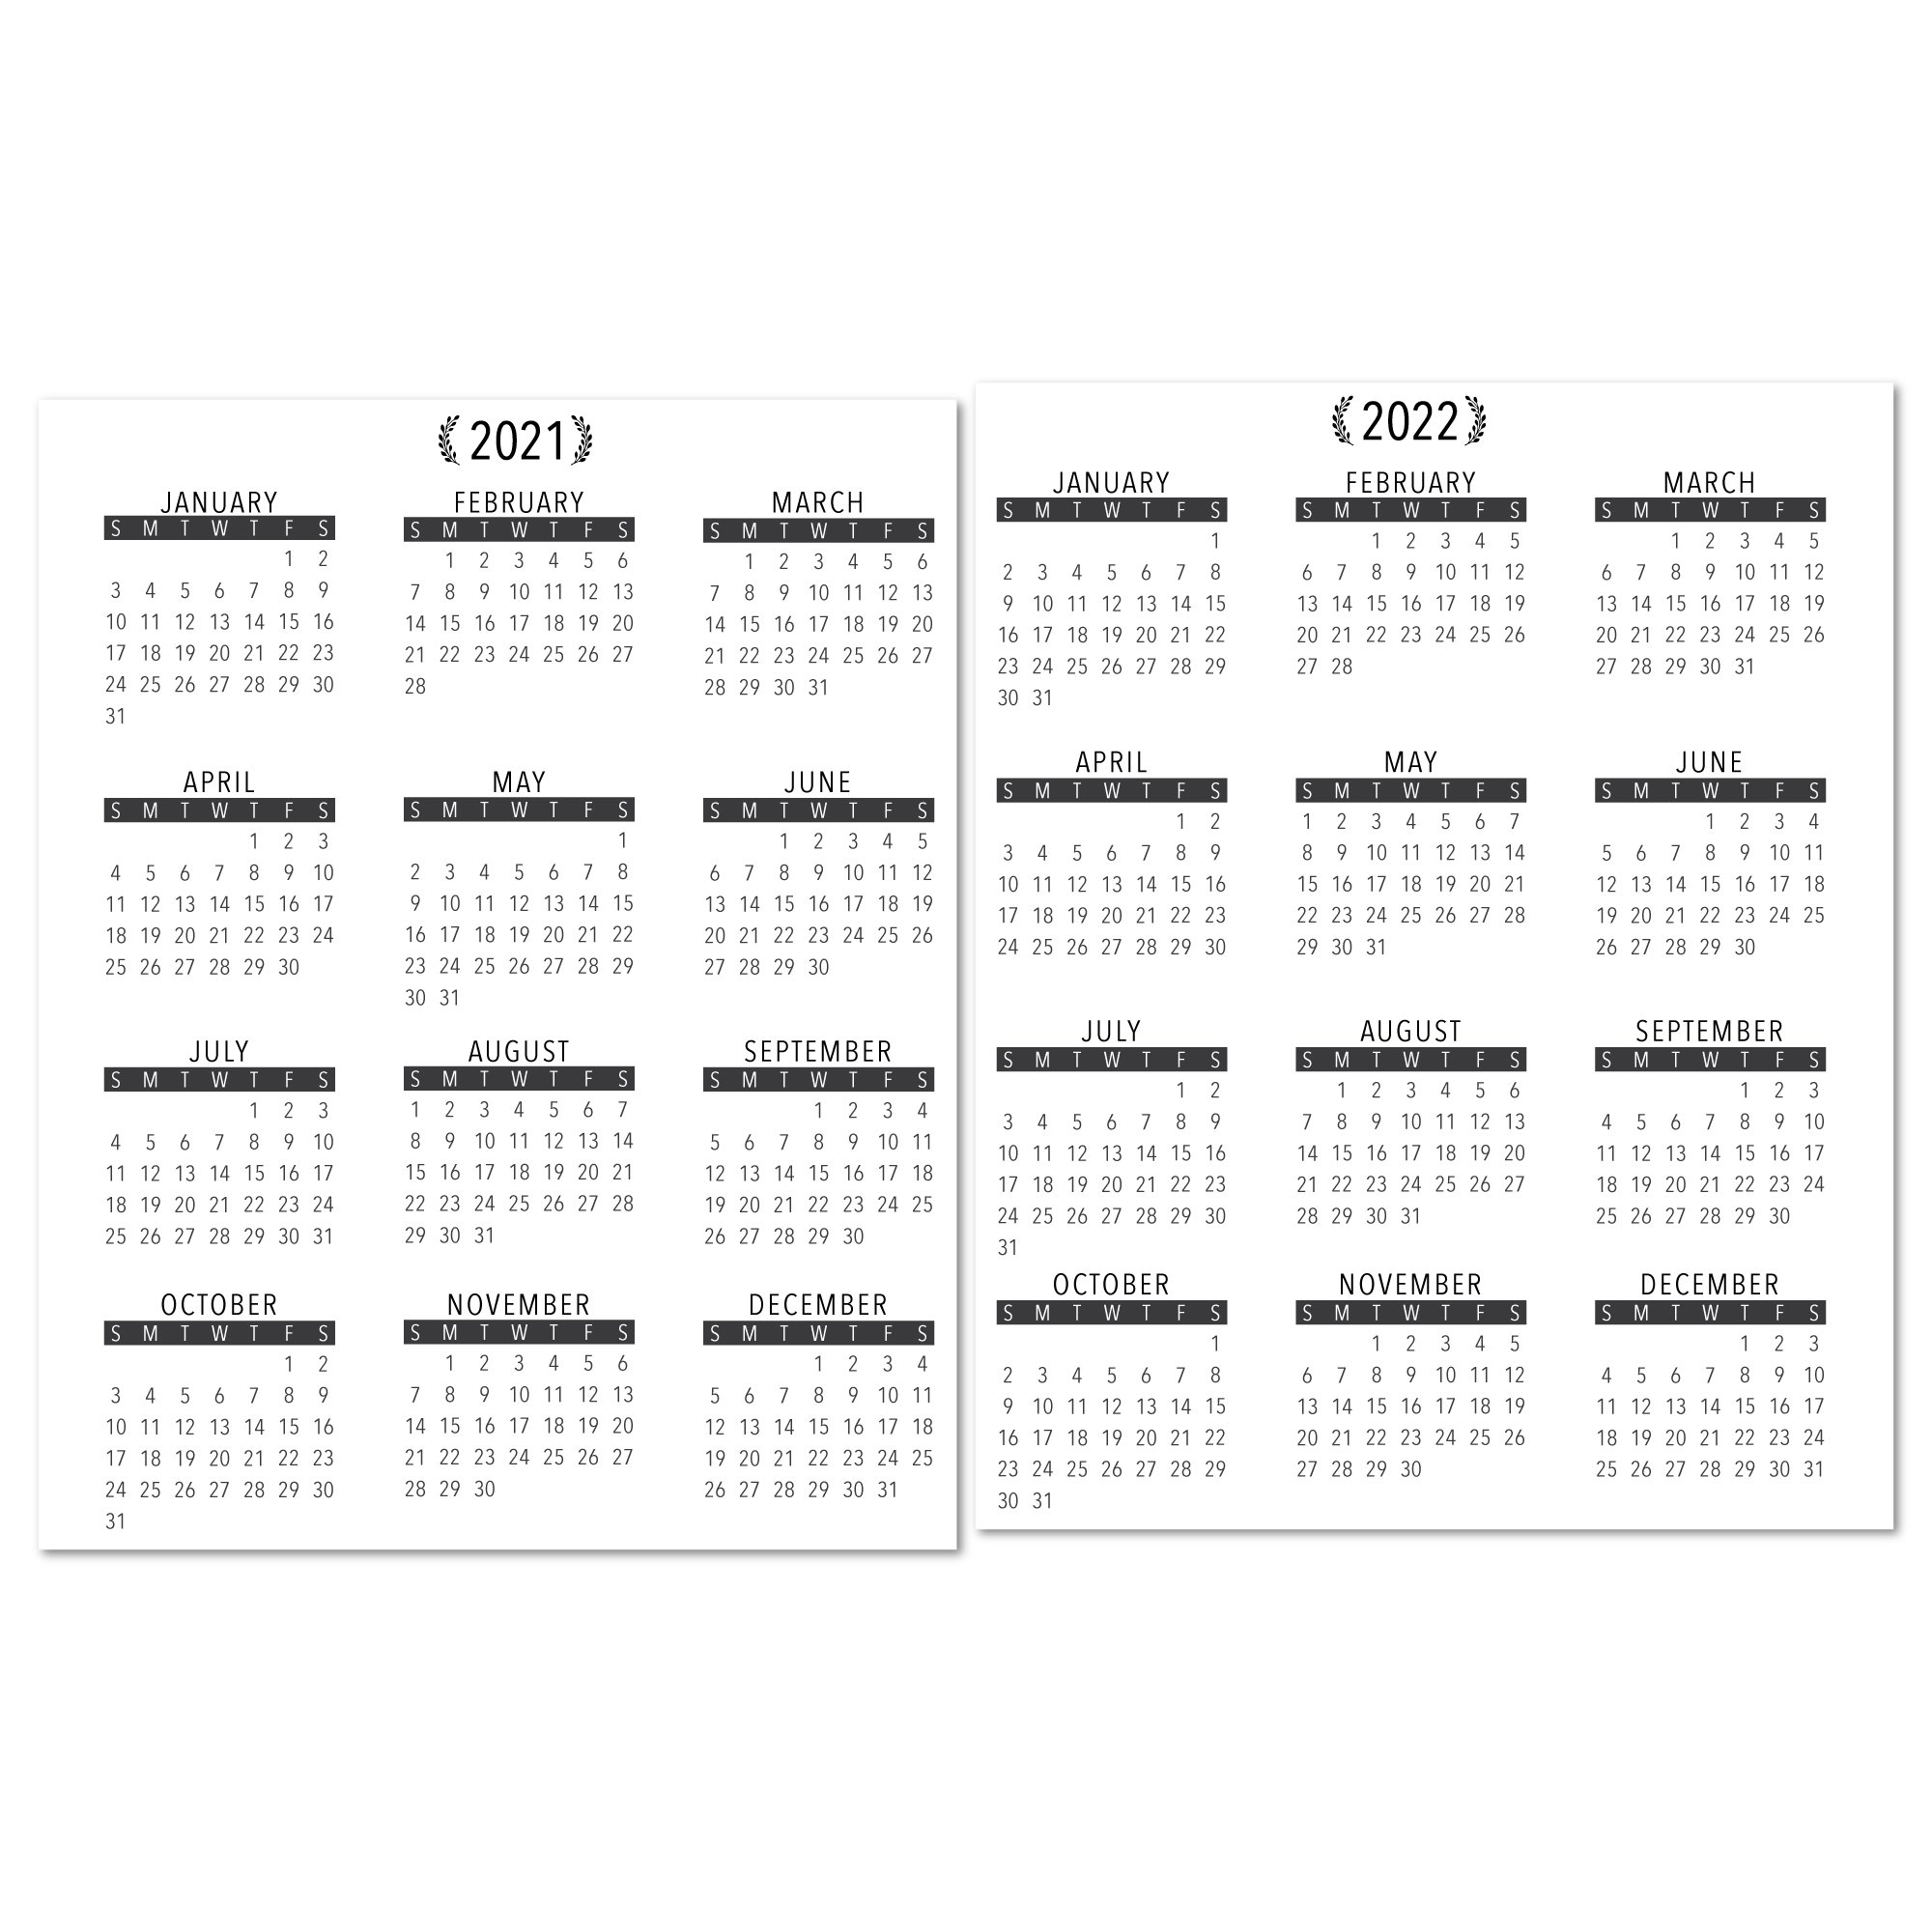 2021-2022 Year At A Glance Calendar With Lamination - Citygirl Planners with regard to 3 Year Calendar 2021 2021 2022